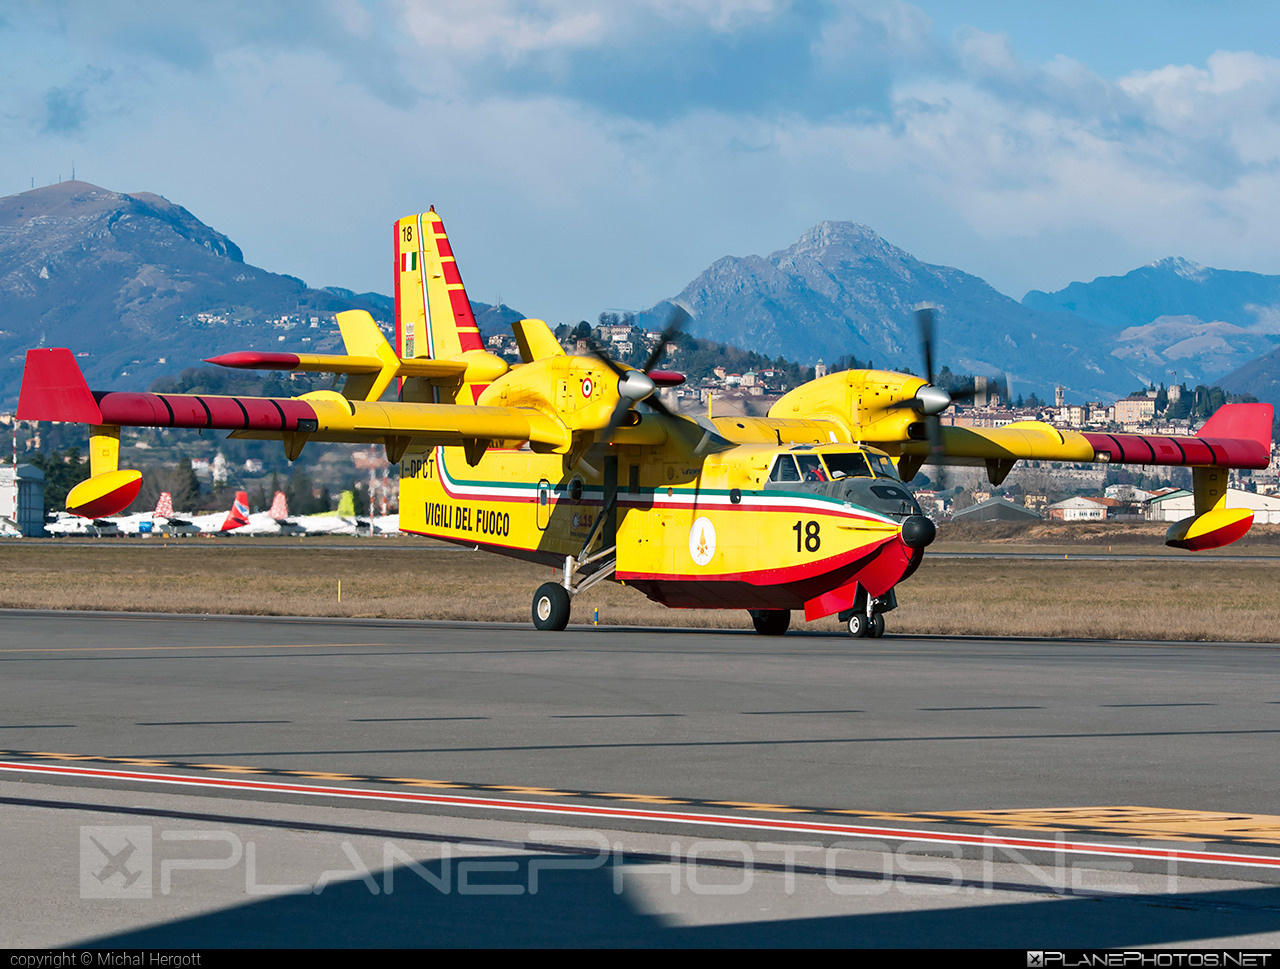 Canadair CL-415 - I-DPCT operated by Corpo nazionale dei vigili del Fuoco (Italian National Firefighters Corps) #canadair #corponazionaledeivigilidelfuoco #italiannationalfirefighterscorps #vigilidelfuoco